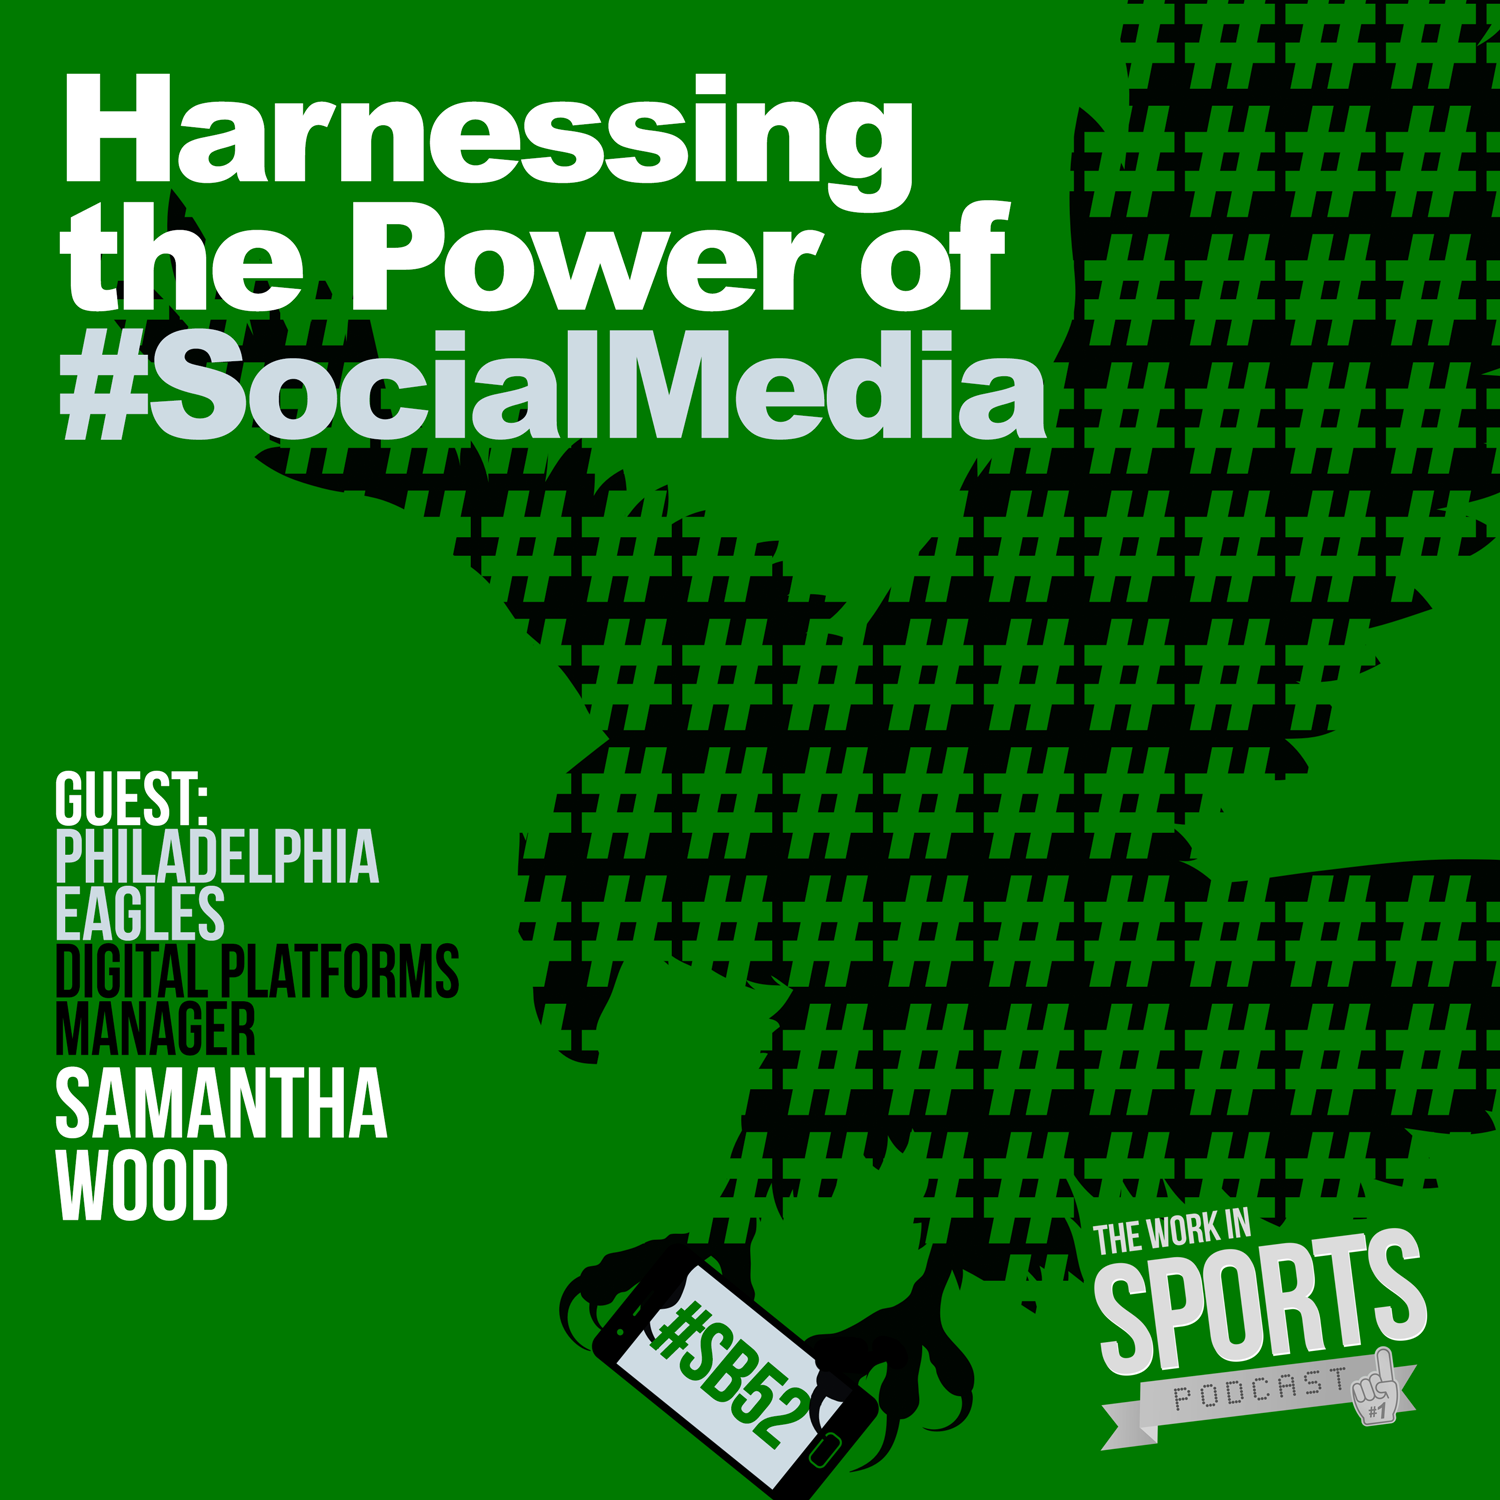 Harnessing the Power of Social Media in Sports